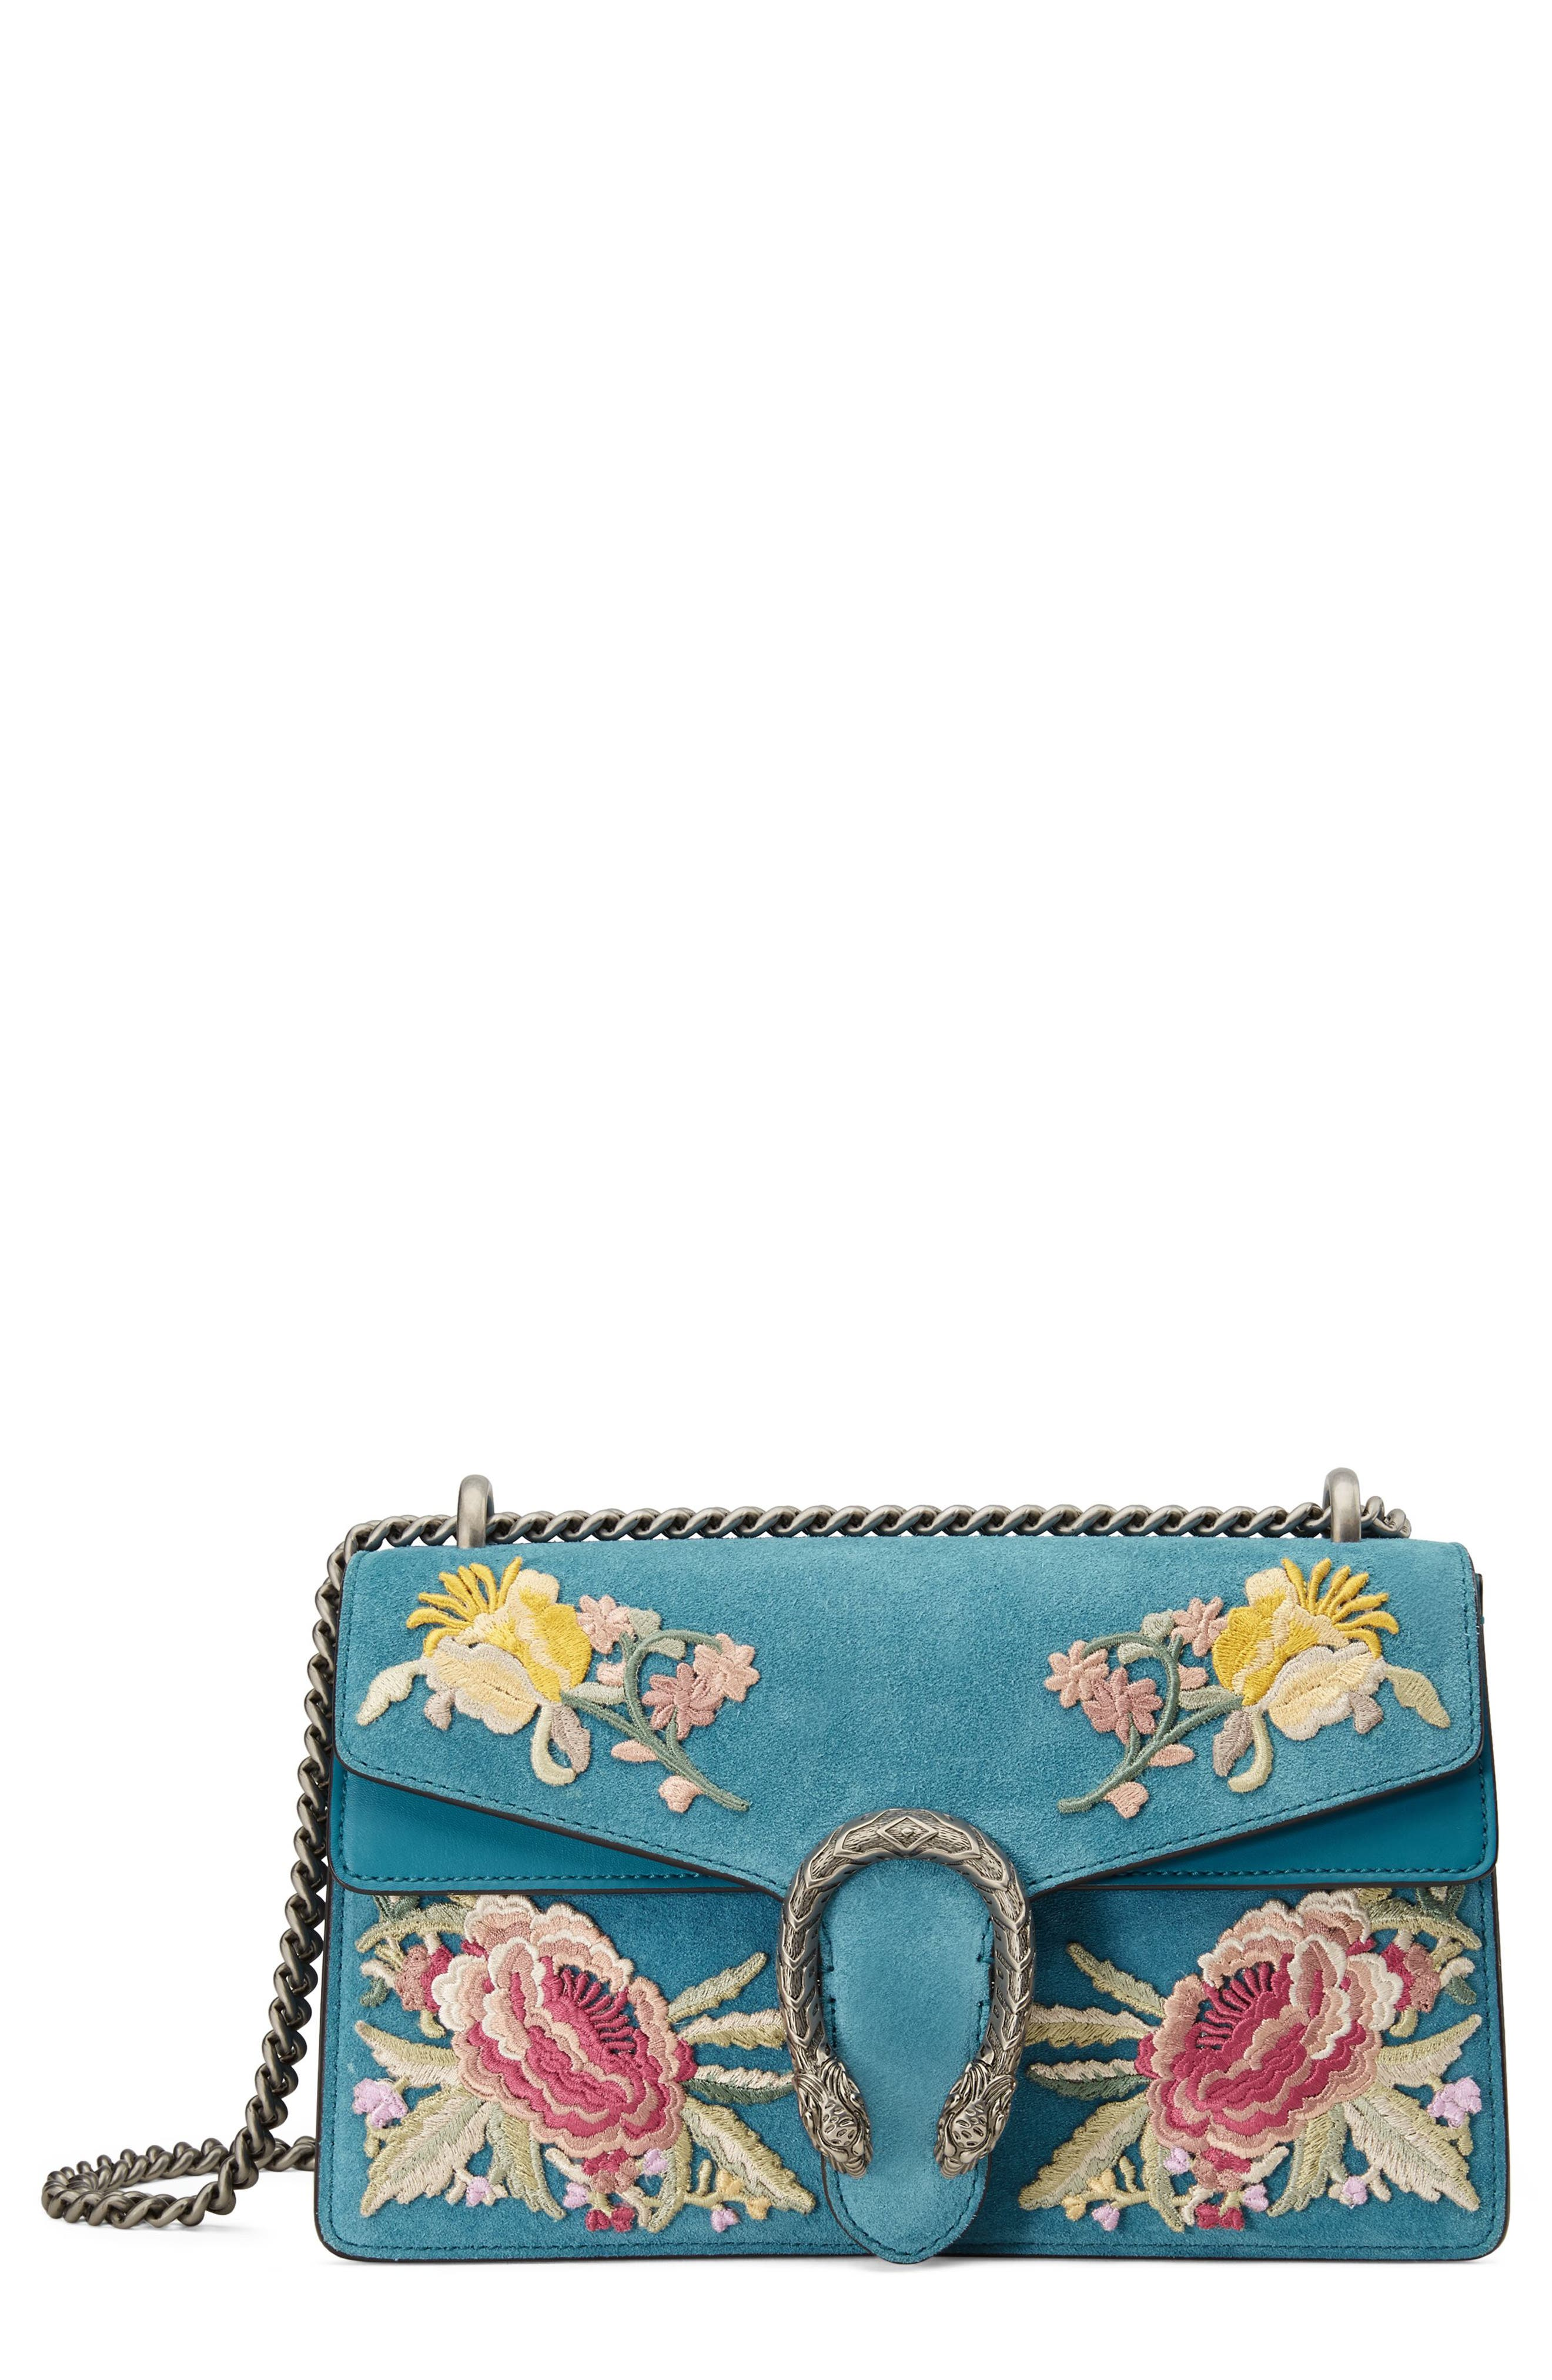 Small Dionysus Embroidered Suede Shoulder Bag,                             Main thumbnail 1, color,                             493